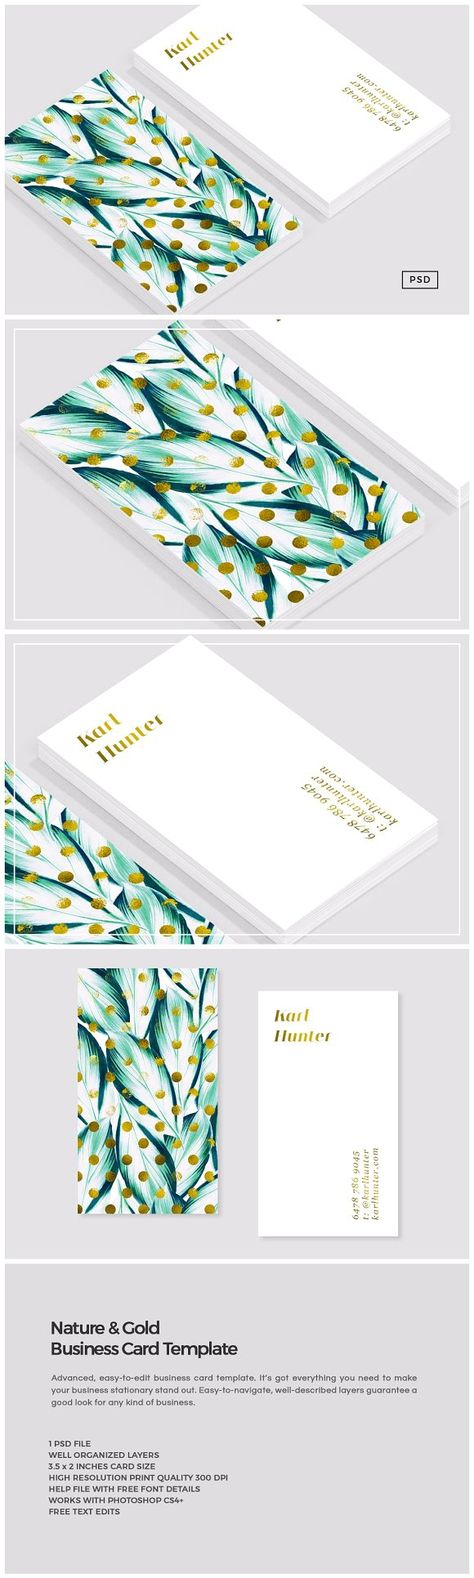 Palm Geometry Business Card By The Design Label On - Got print business card template